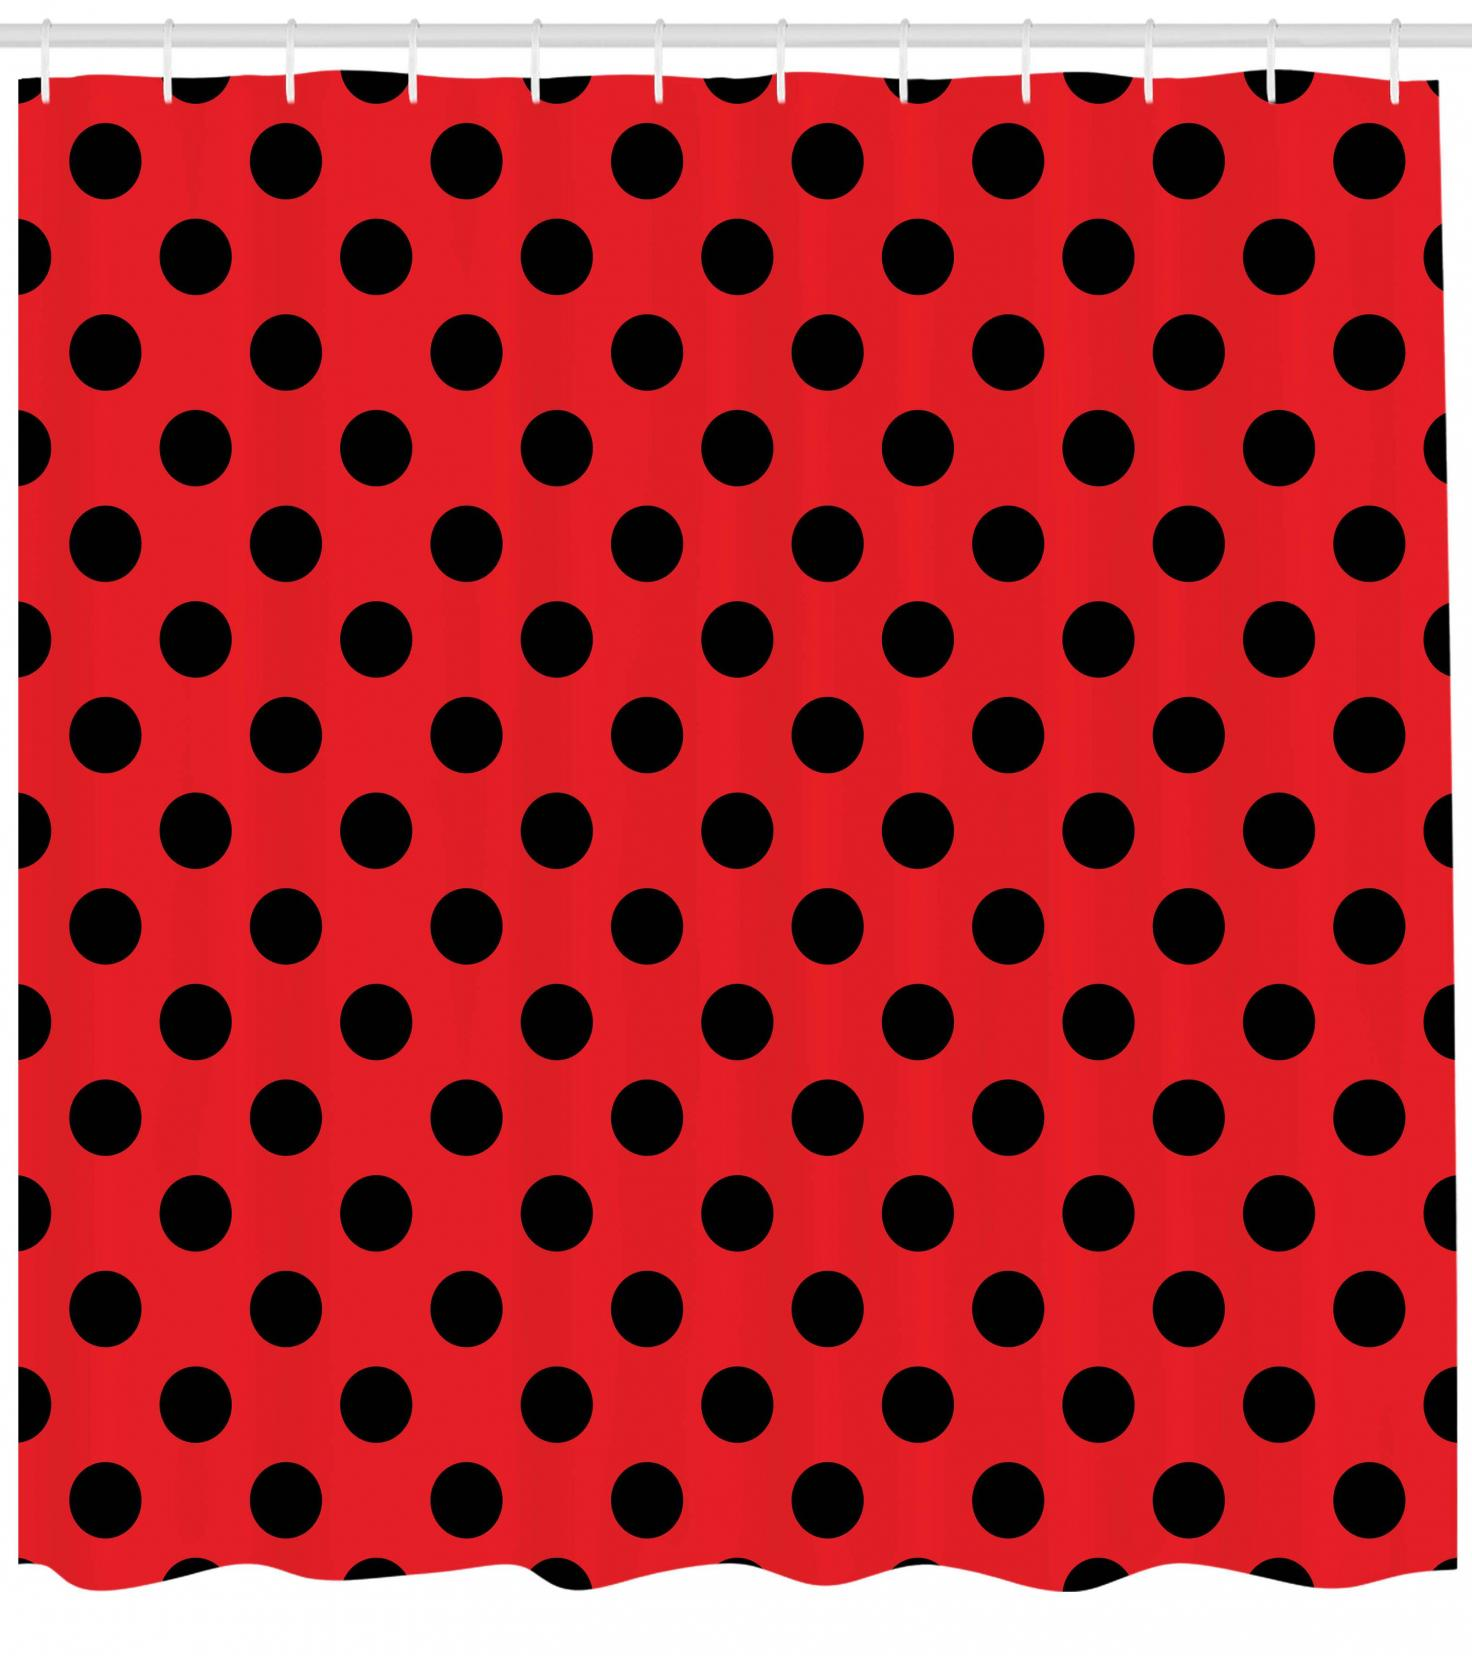 Red And Black Shower Curtain Set Red And Black Shower Curtain Retro Vintage Pop Art Theme Old 60s 50s Rocker Inspired Bold Polka Dots Image Fabric Bathroom Set With Hooks Scarlet